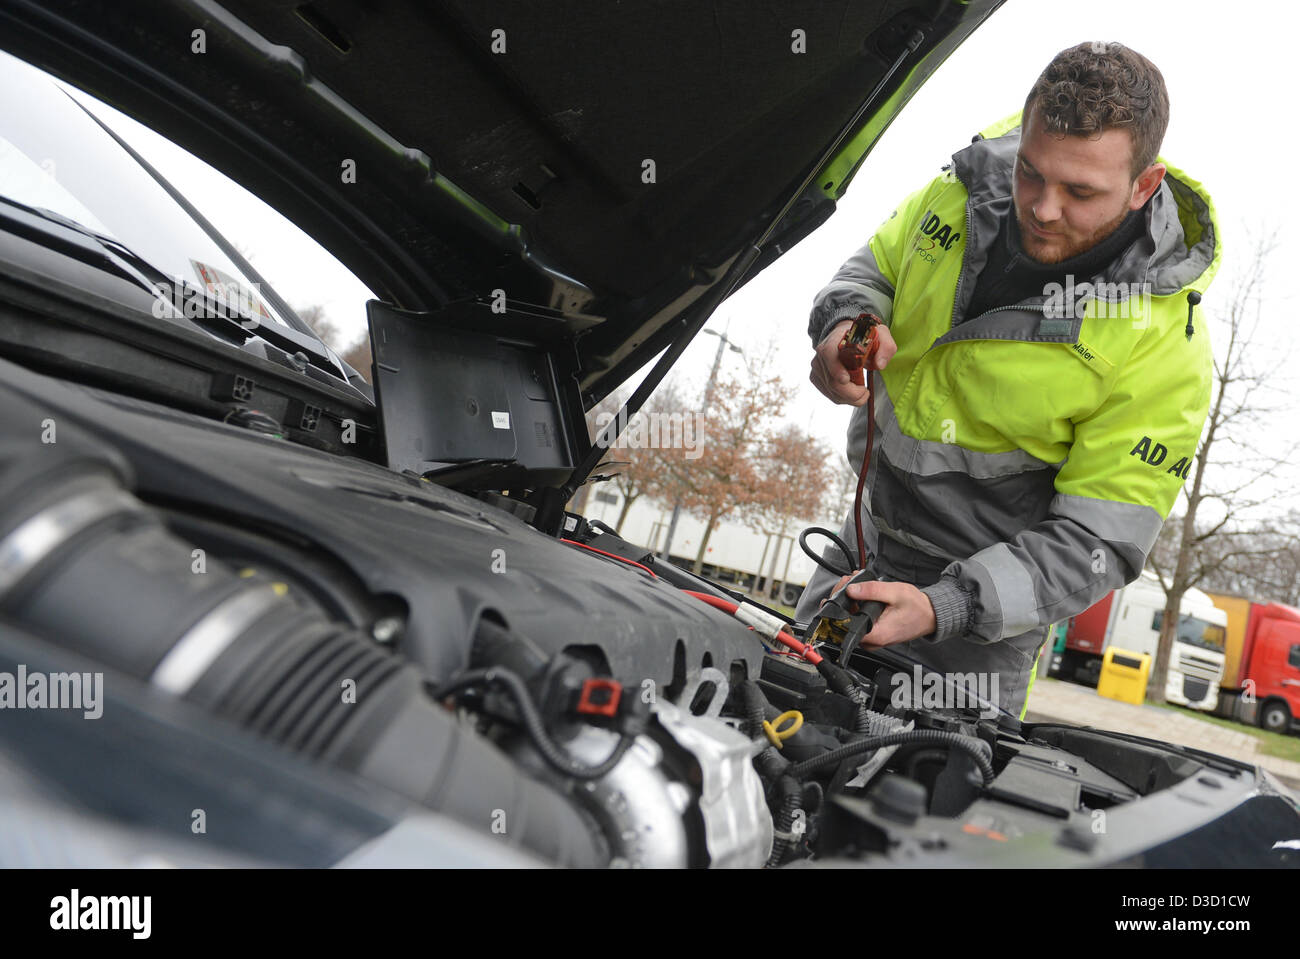 ADAC road patrol driver Kai Maier shows how to short a car battery in Leonberg, Germany, 05 February 2013. Krämer Stock Photo